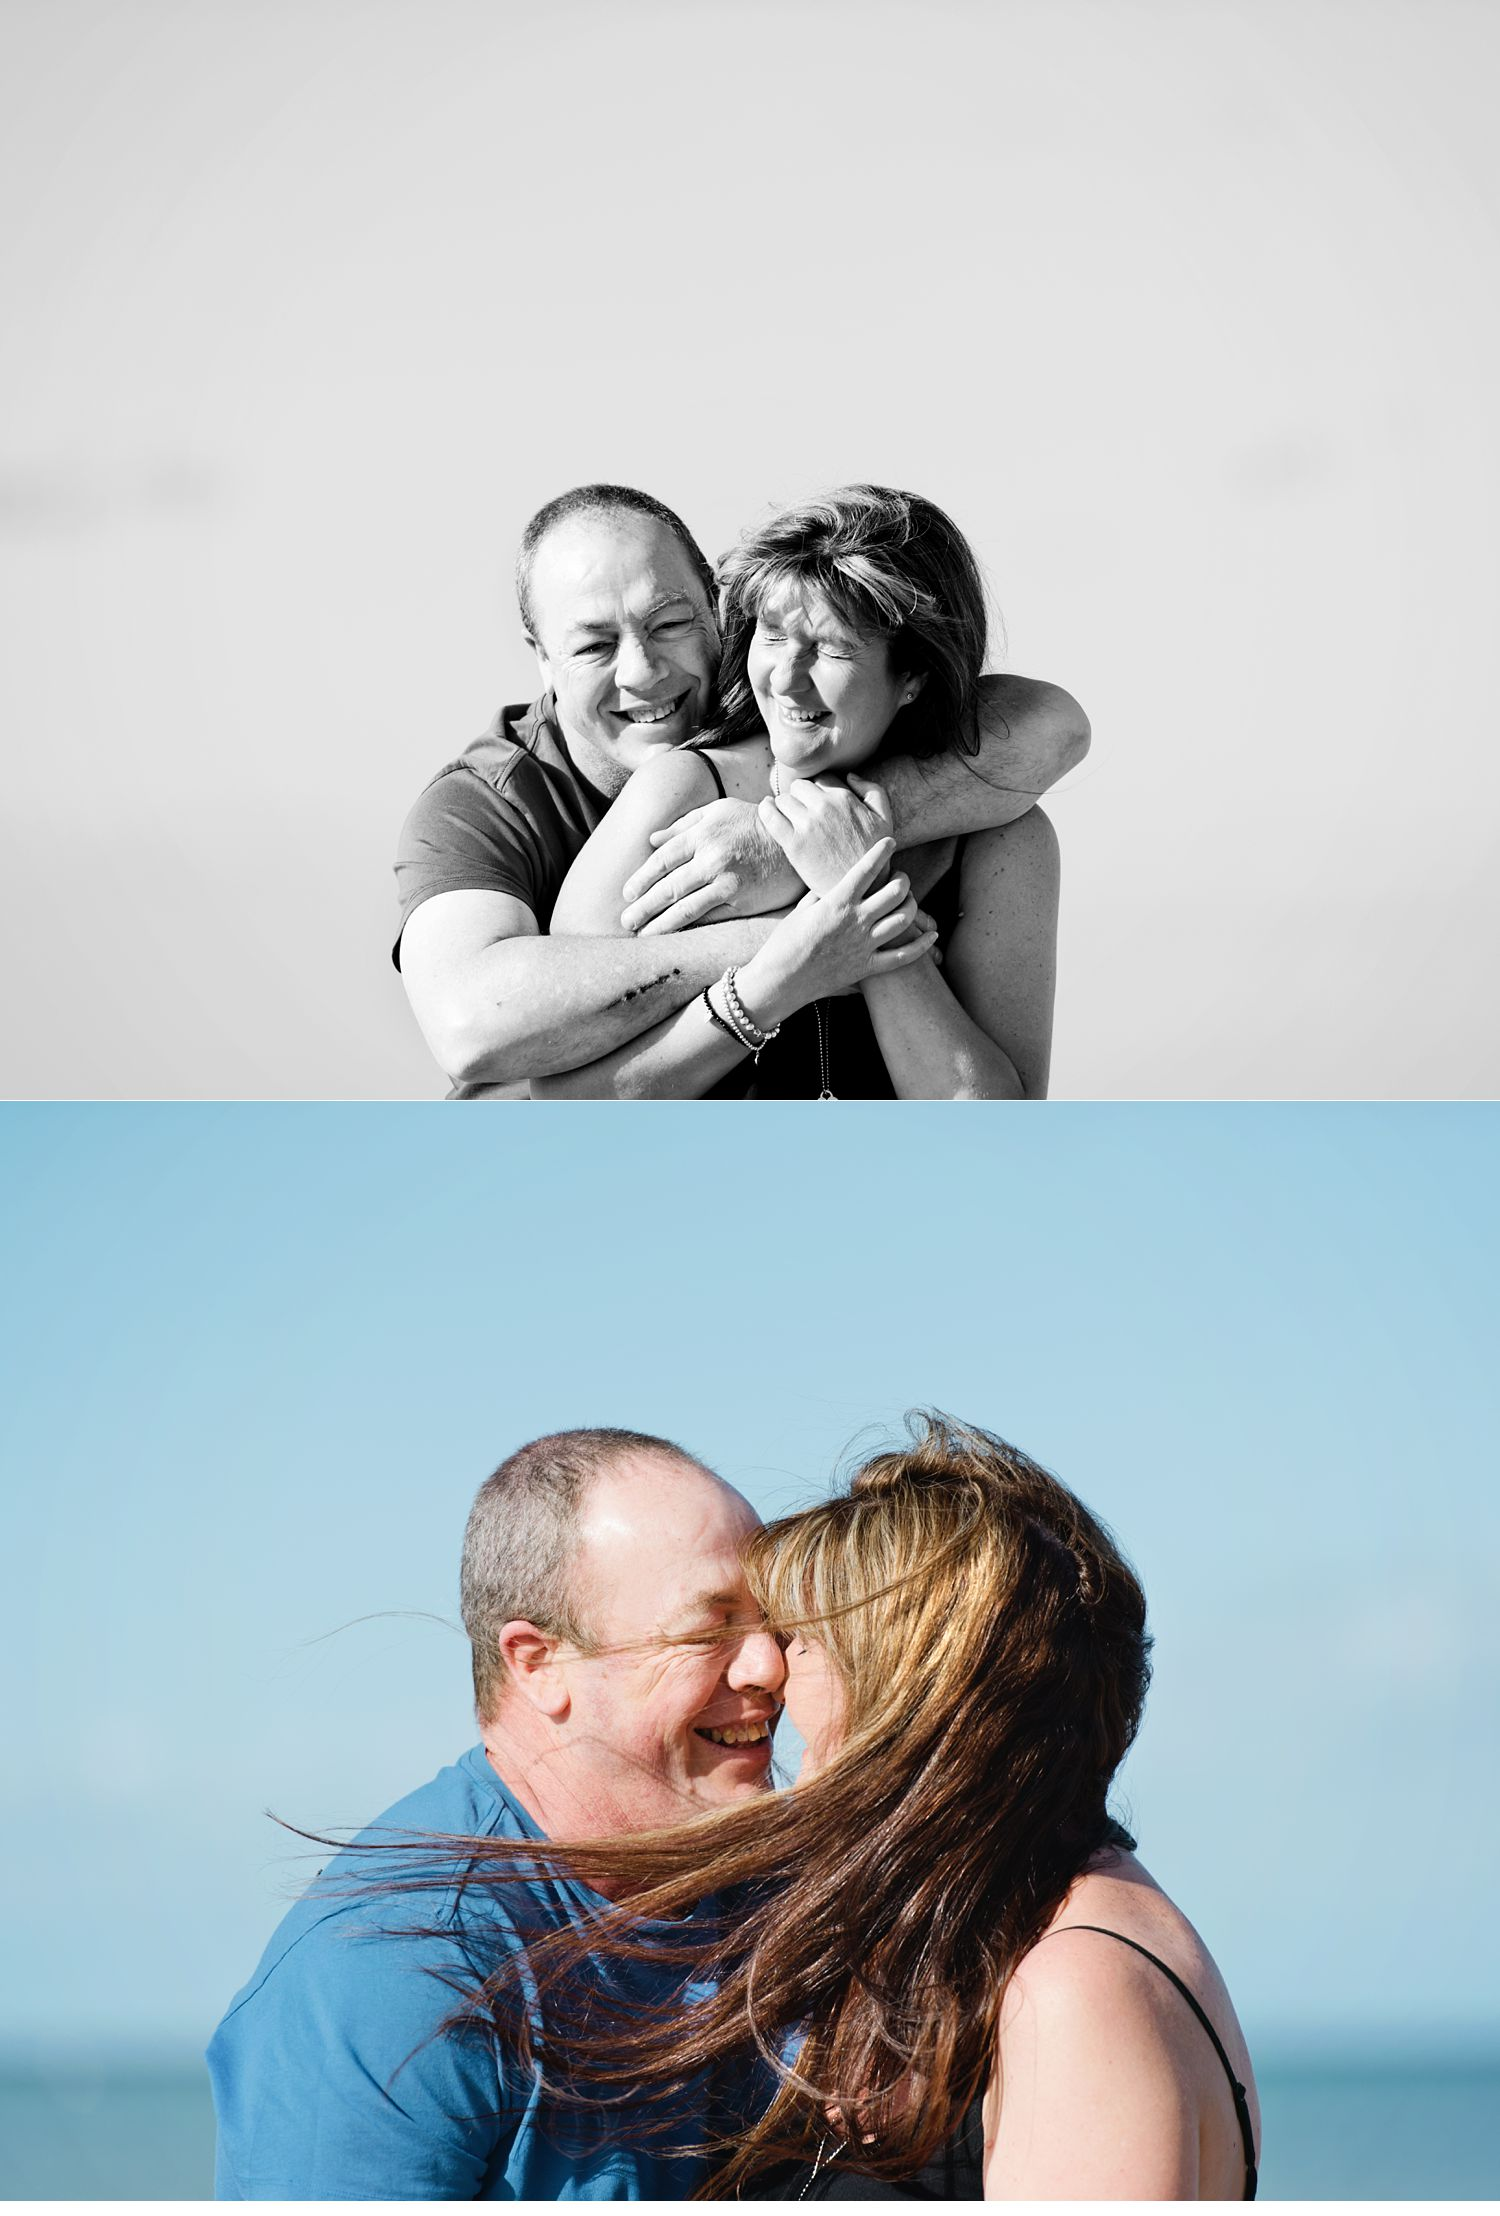 bec-stewart-photography-extended-family-photography-session-melbourne-australia-city-of-casey-7.jpg